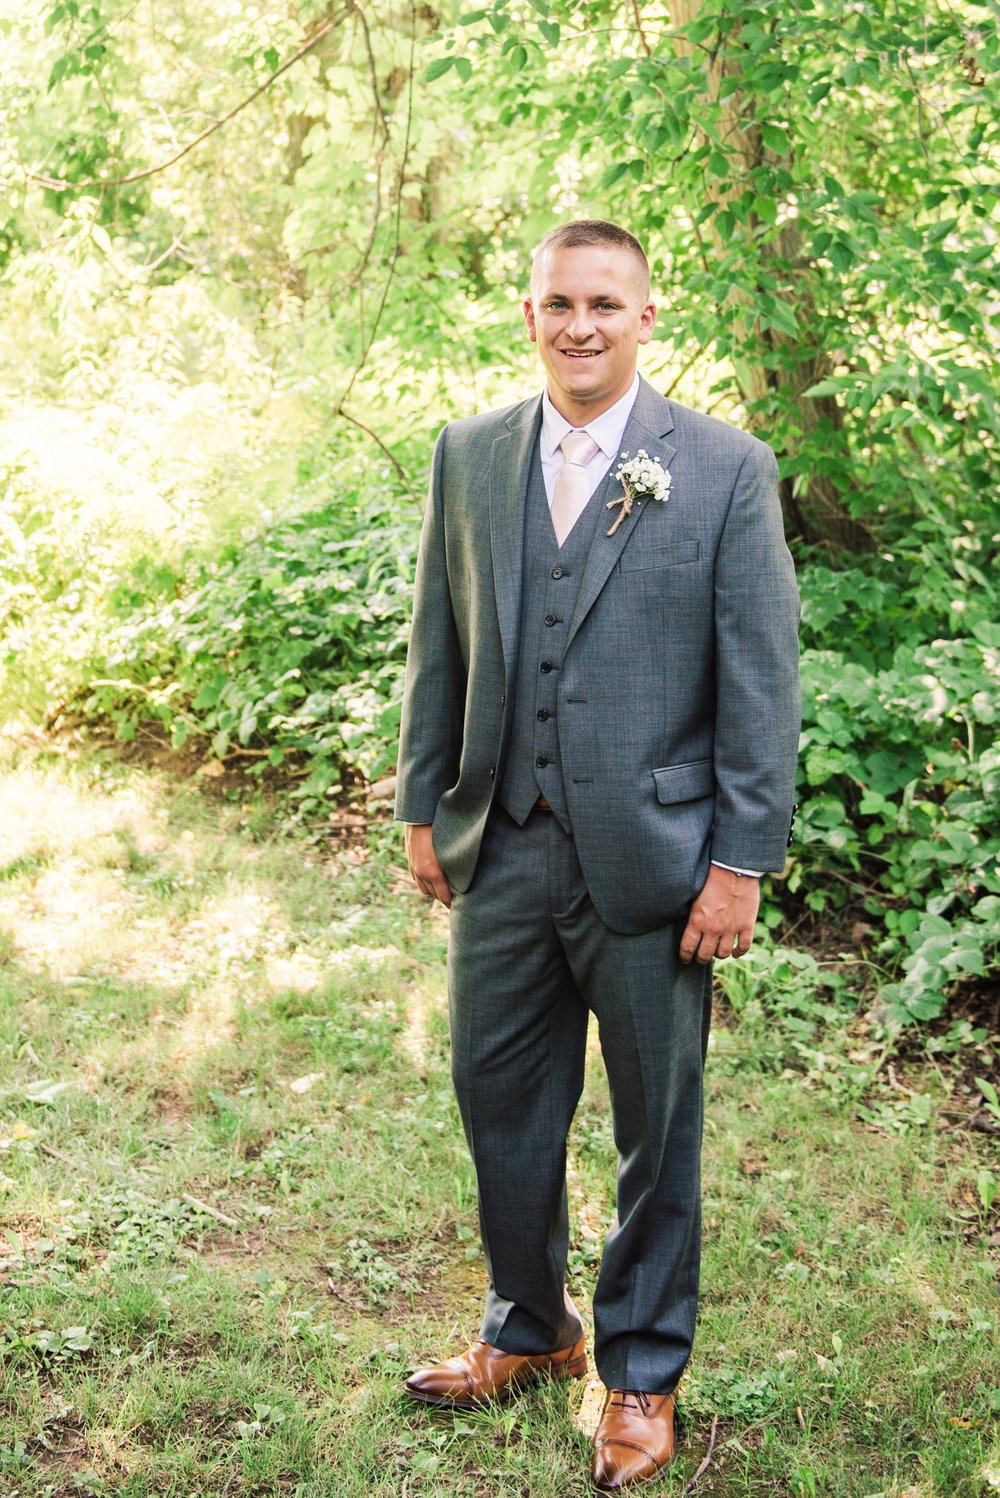 Wolf_Oak_Acres_Central_NY_Wedding_JILL_STUDIO_Rochester_NY_Photographer_DSC_5089.jpg